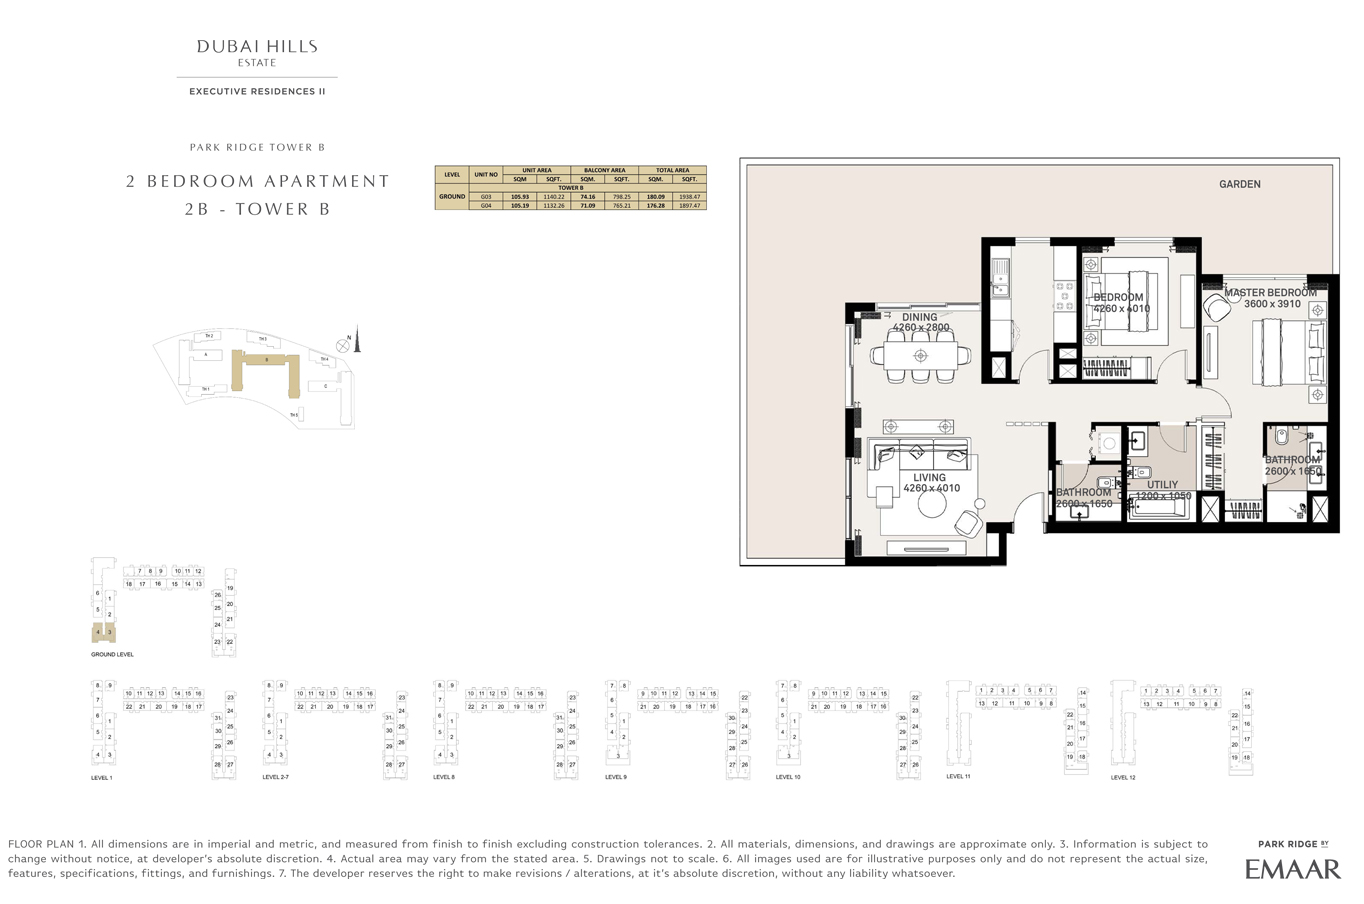 2 Bedroom Type 2B, Tower B, Size 1897 Sq Ft